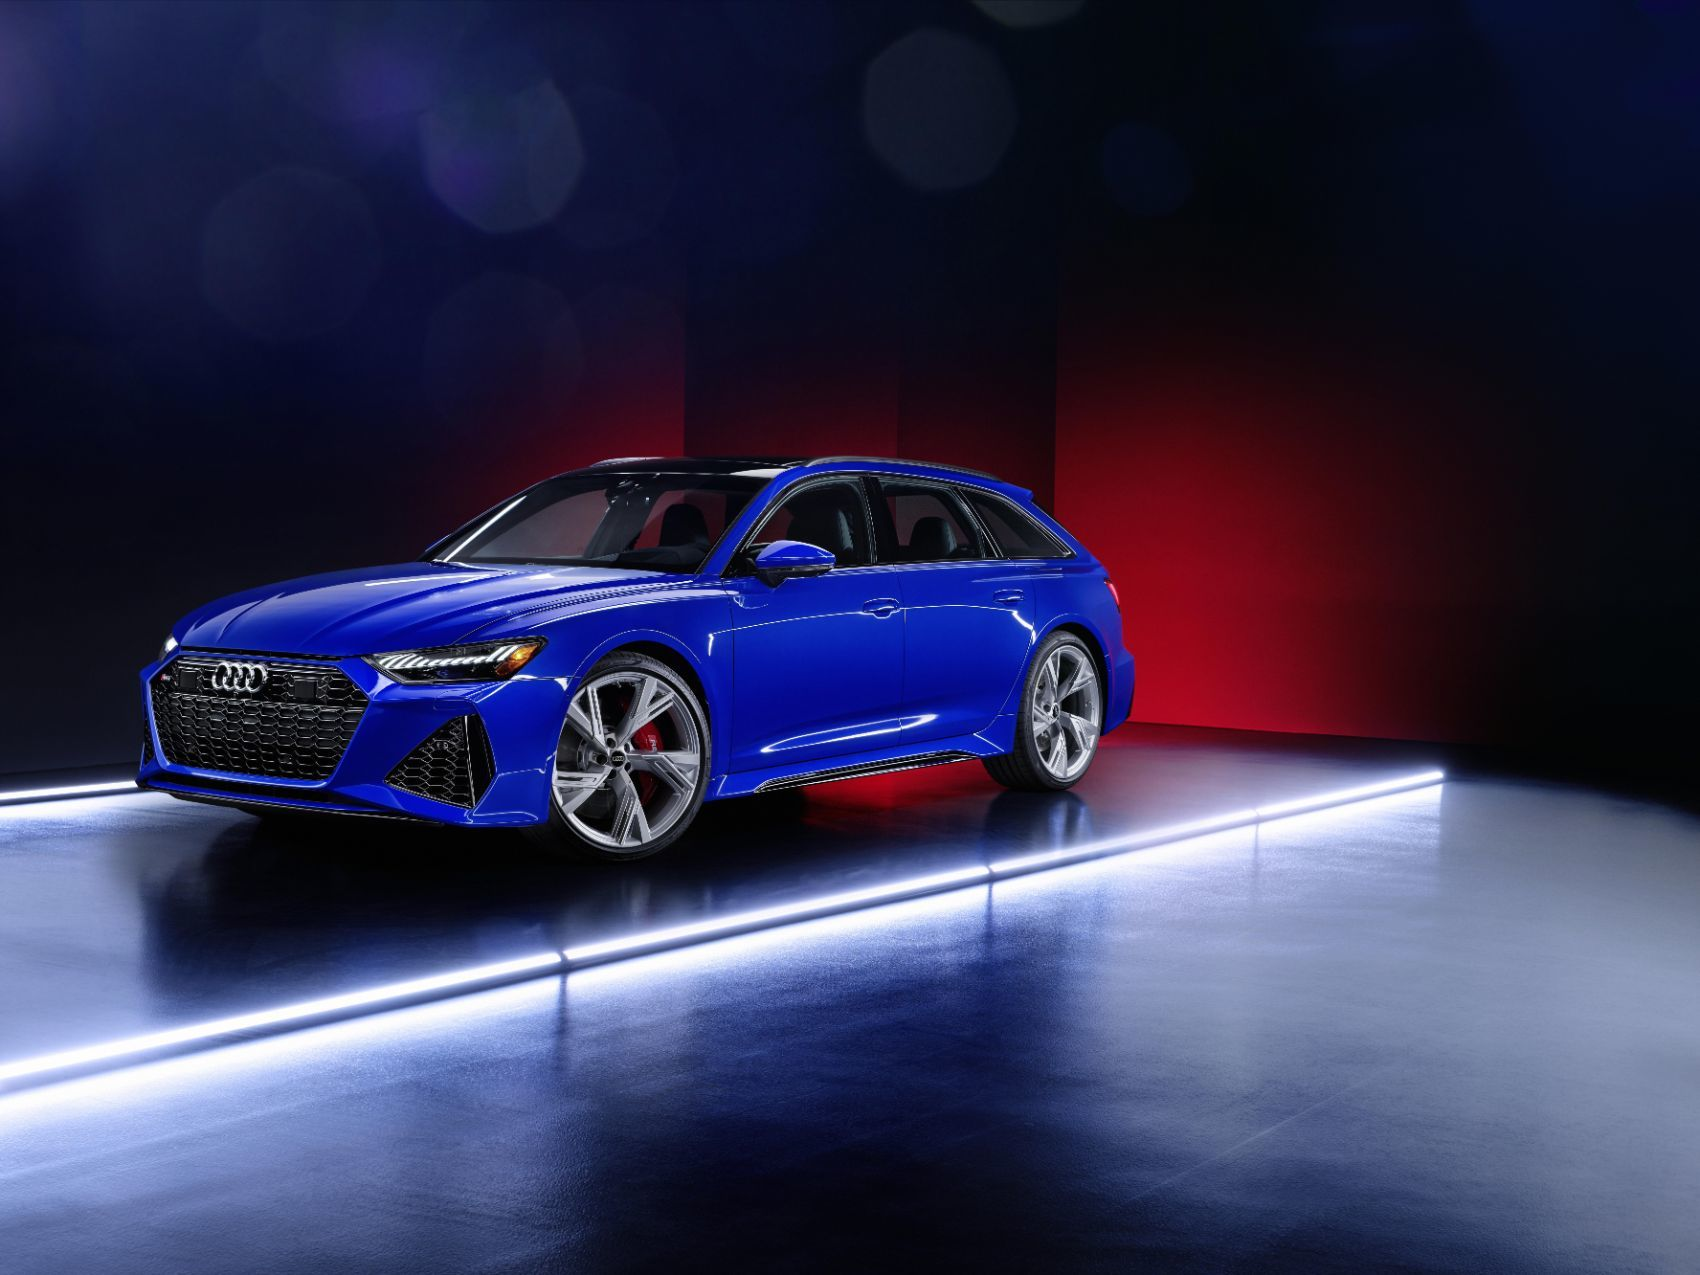 2021 Audi RS 6 Avant RS Tribute Edition: The 1994 RS2 Avant Comes Back!